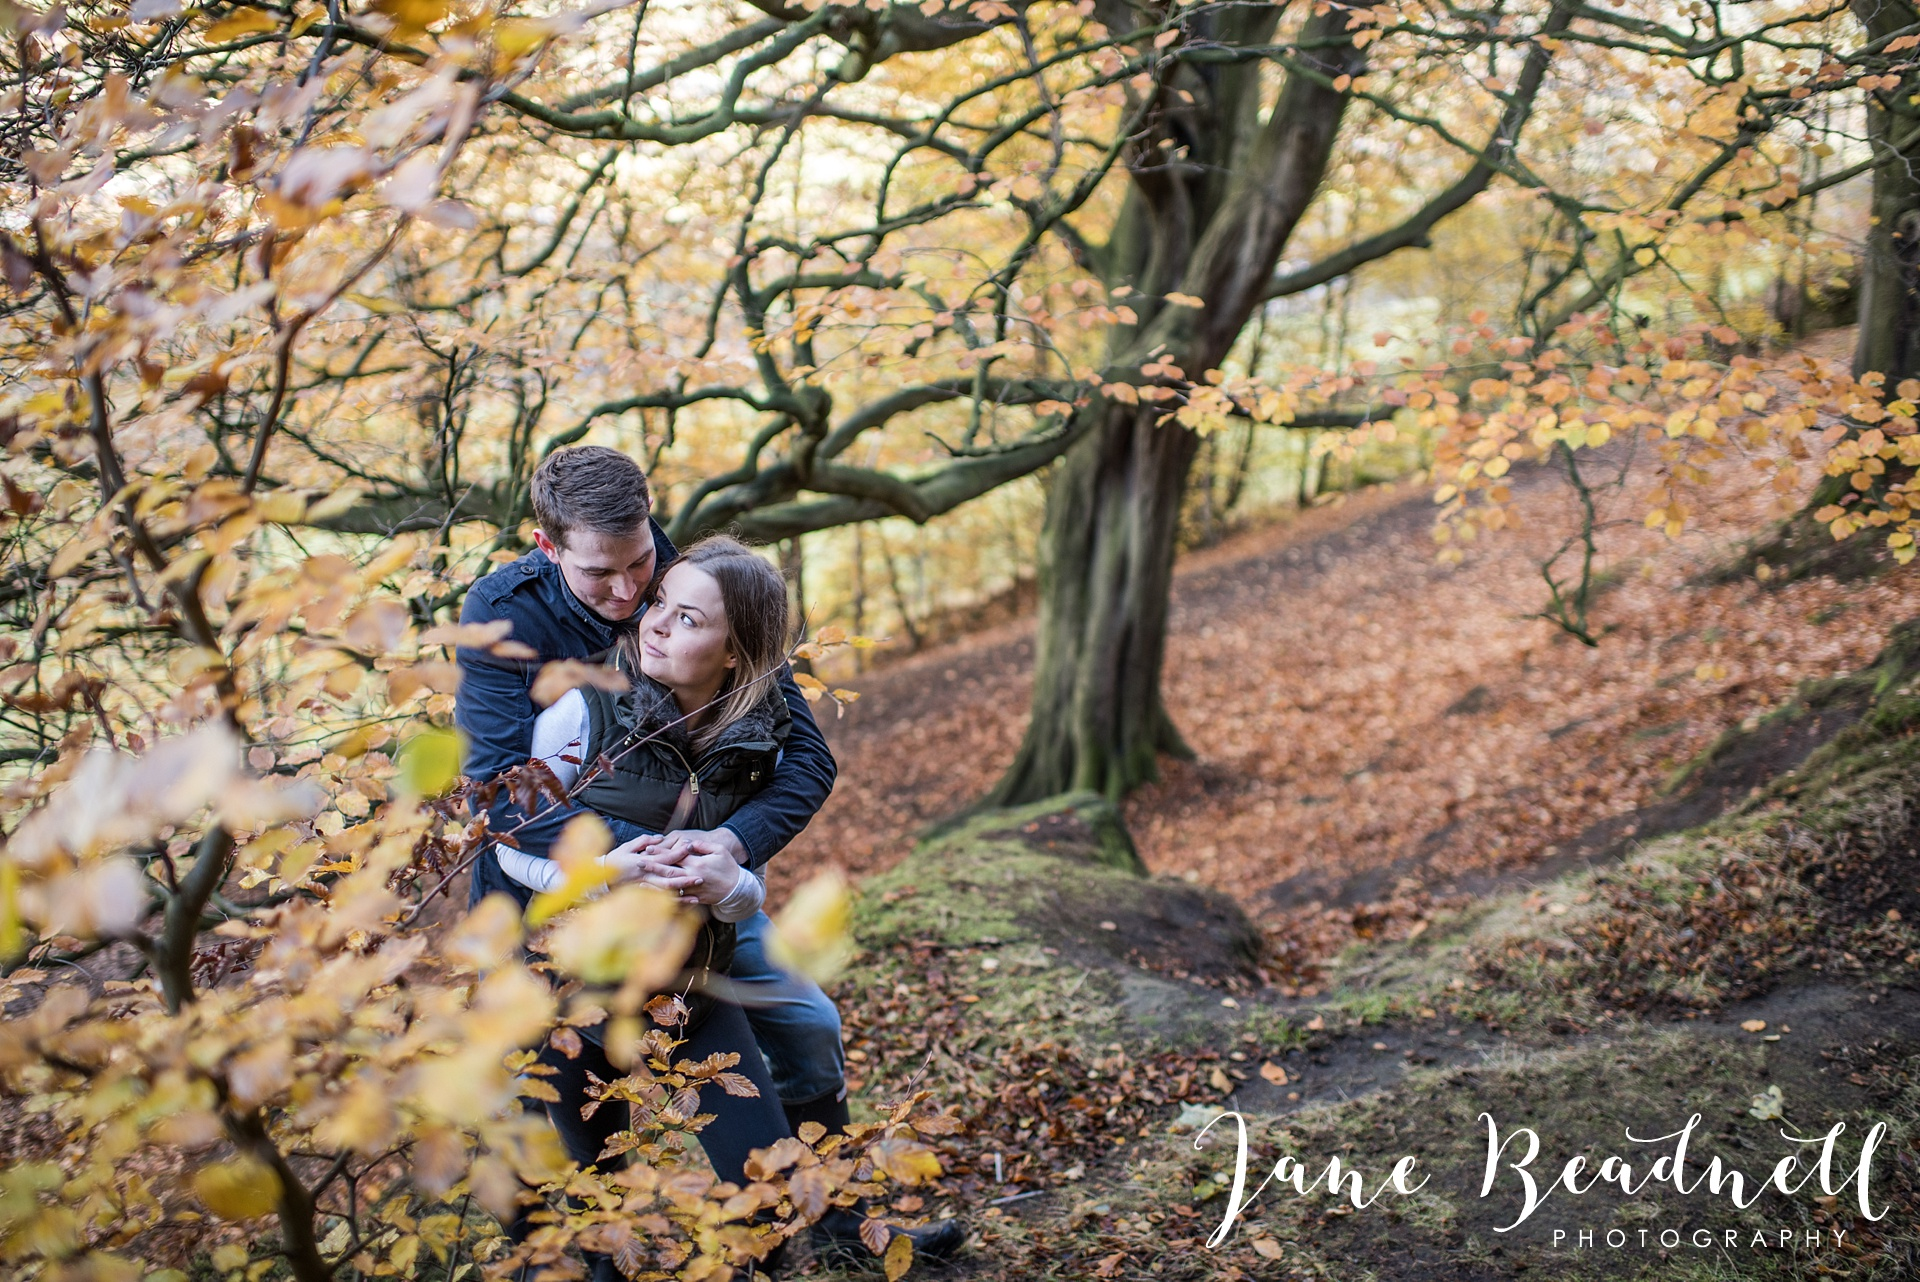 engagement-shoot-yorkshire-wedding-photographer-jane-beadnell-photography-uk-and-destination-wedding-photographer-engagement-shoot_0007